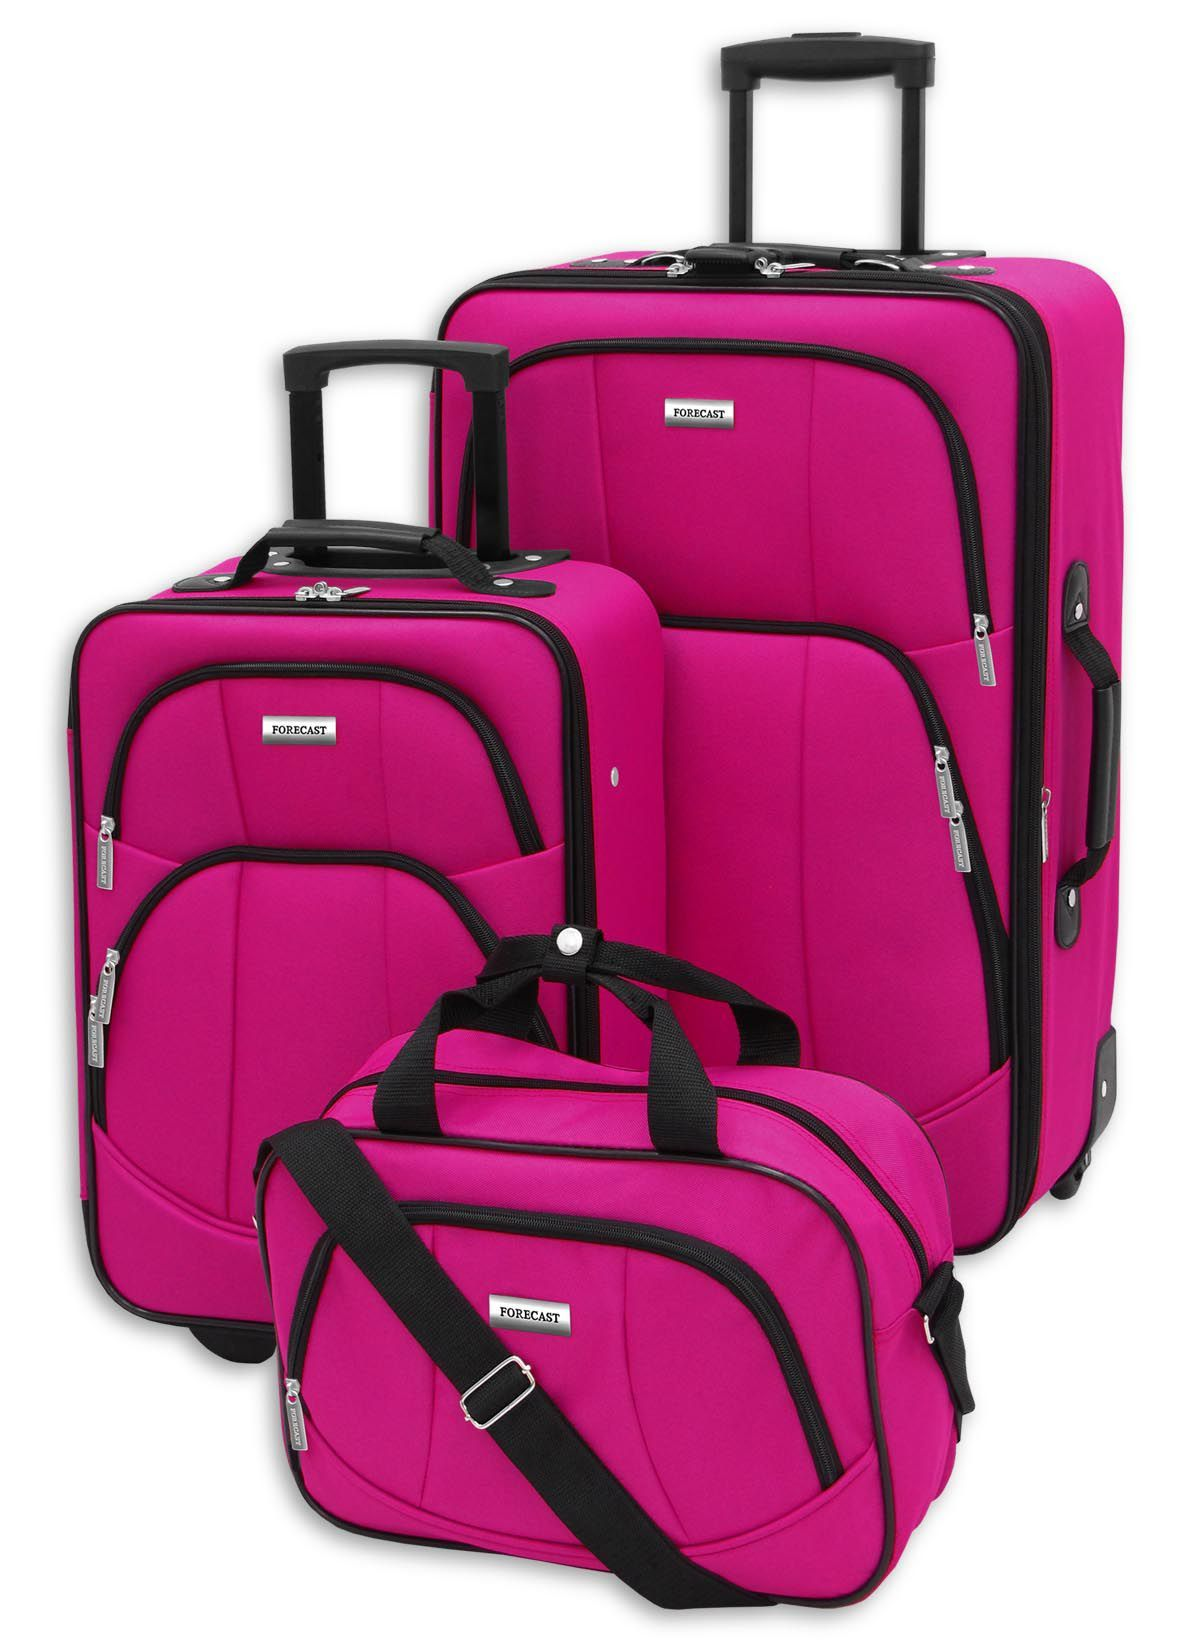 Forecast Magenta Fiji 3 Piece Luggage Set - For the Home - Luggage    Suitcases - Luggage Sets 4a2a3c6b00dfb